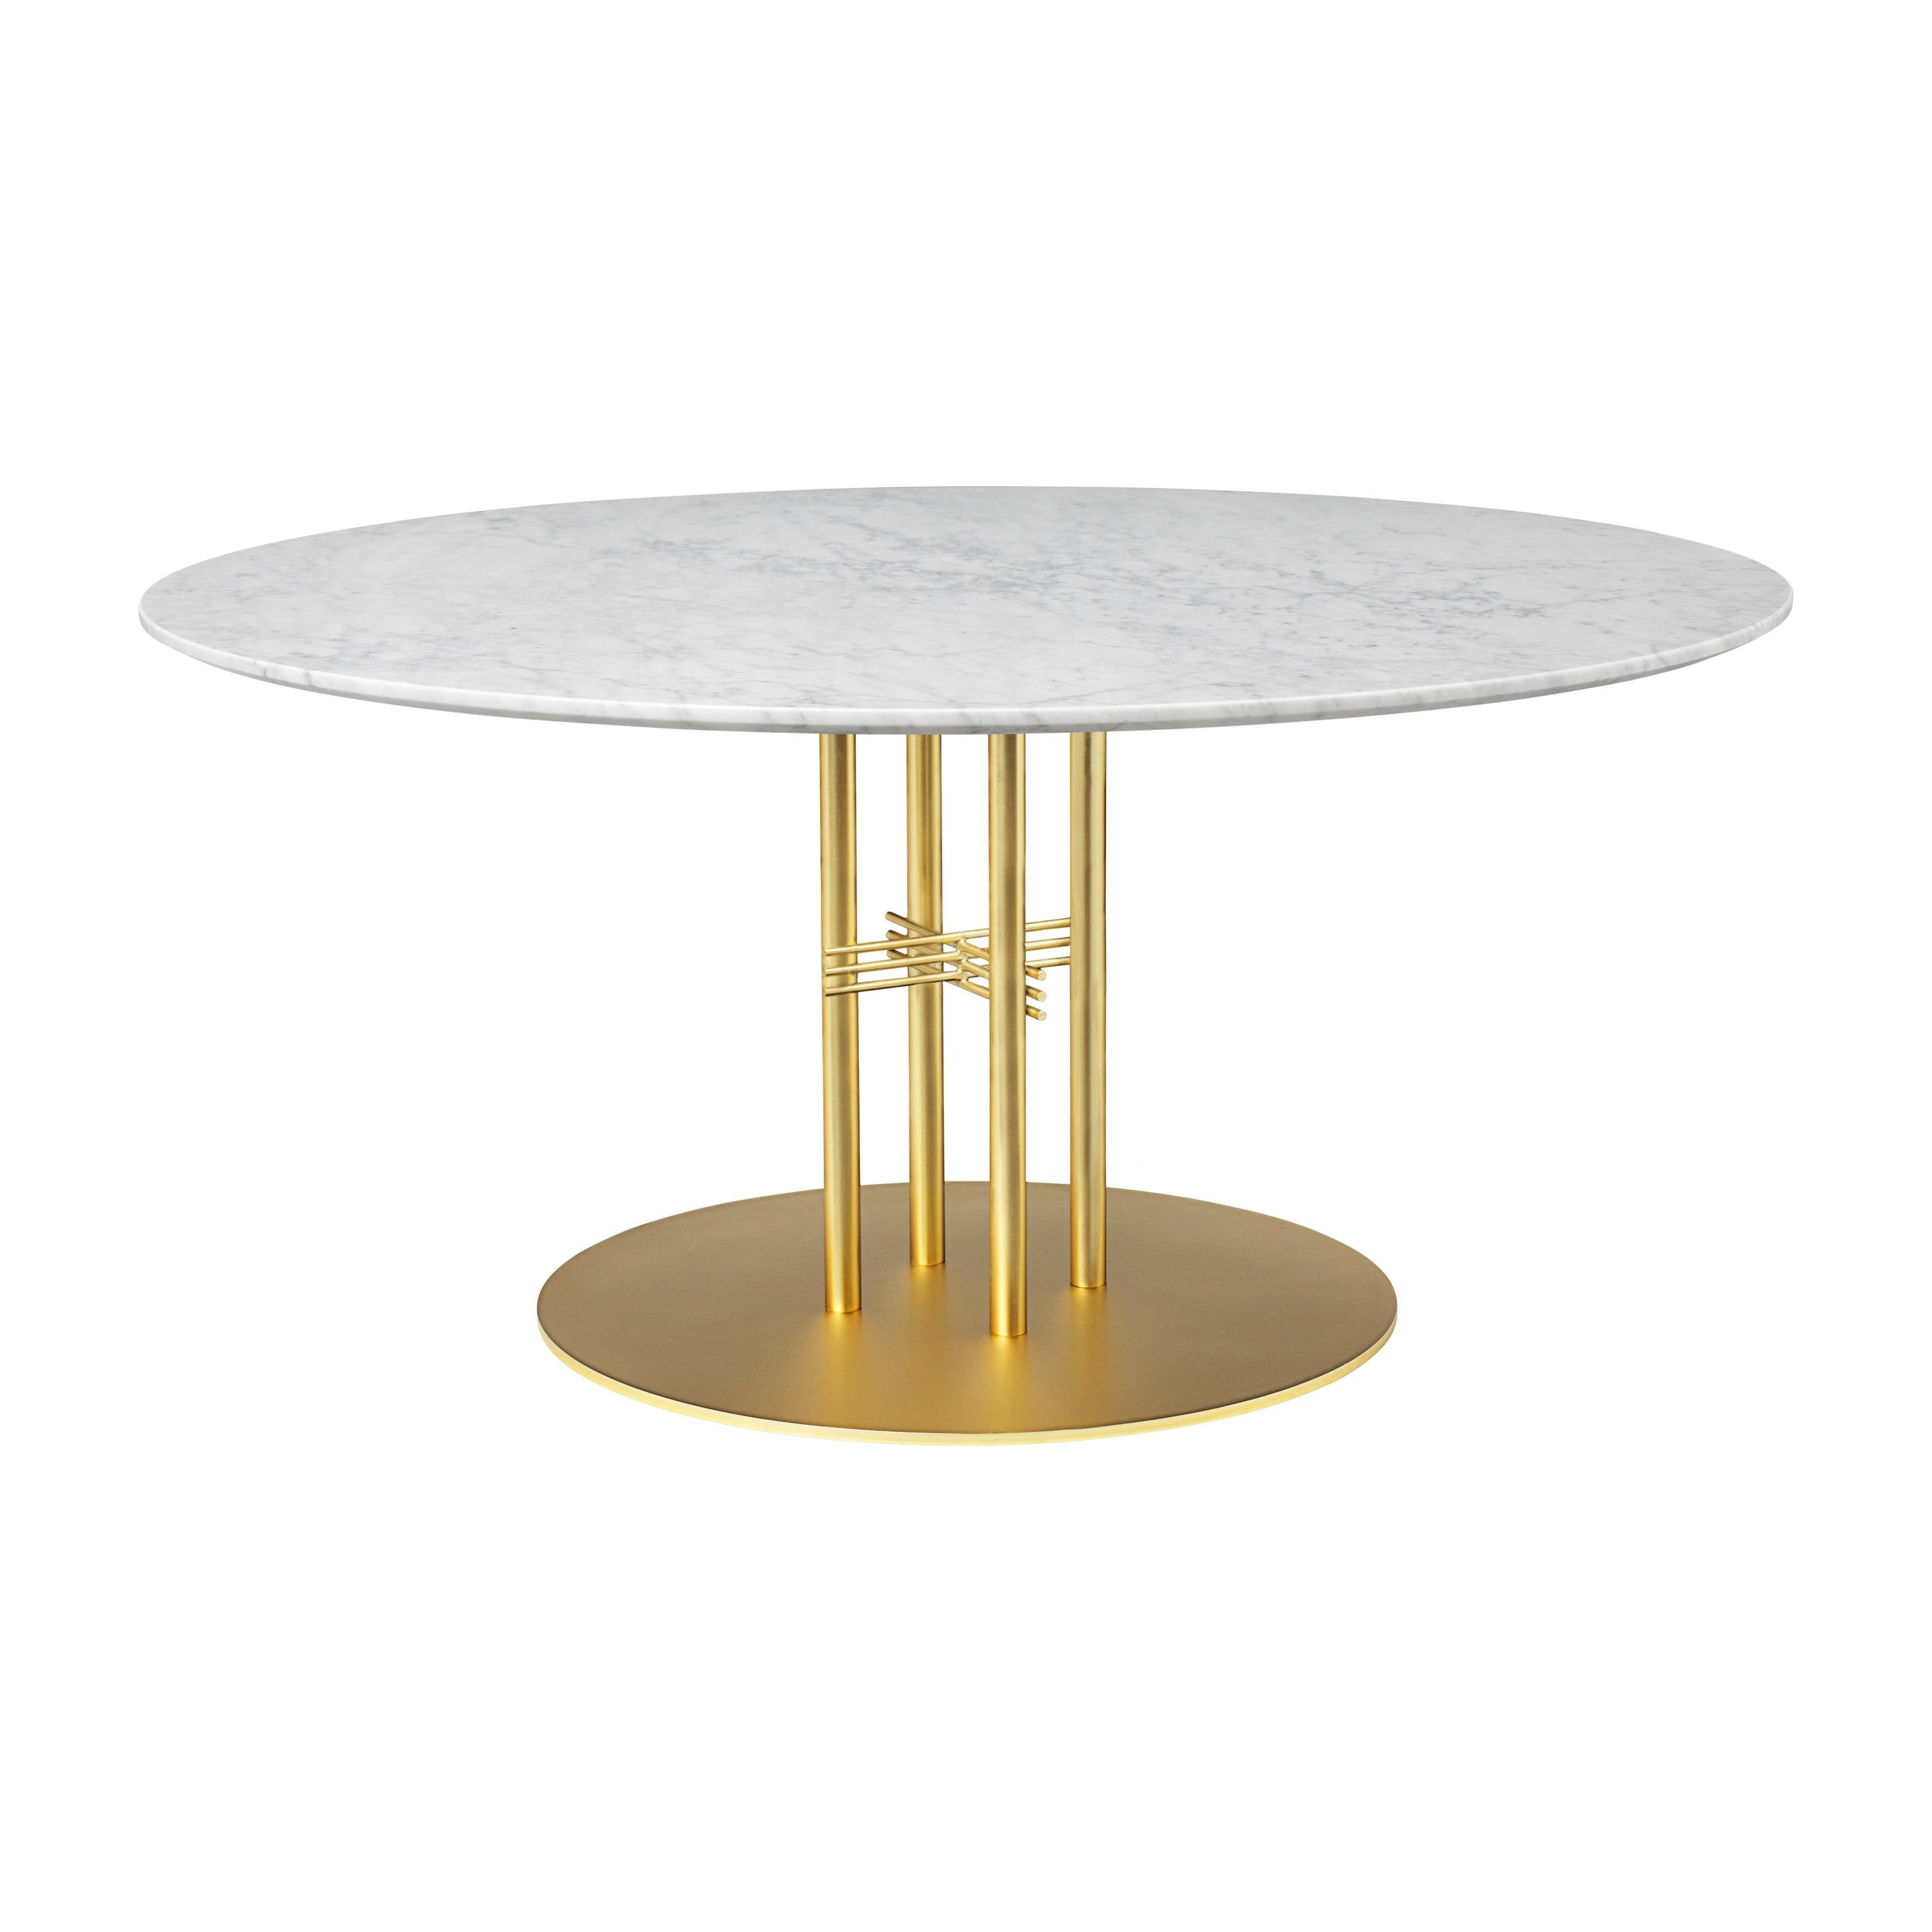 TS Column Lounge Table: Large + Brass Base + White Carrara Marble